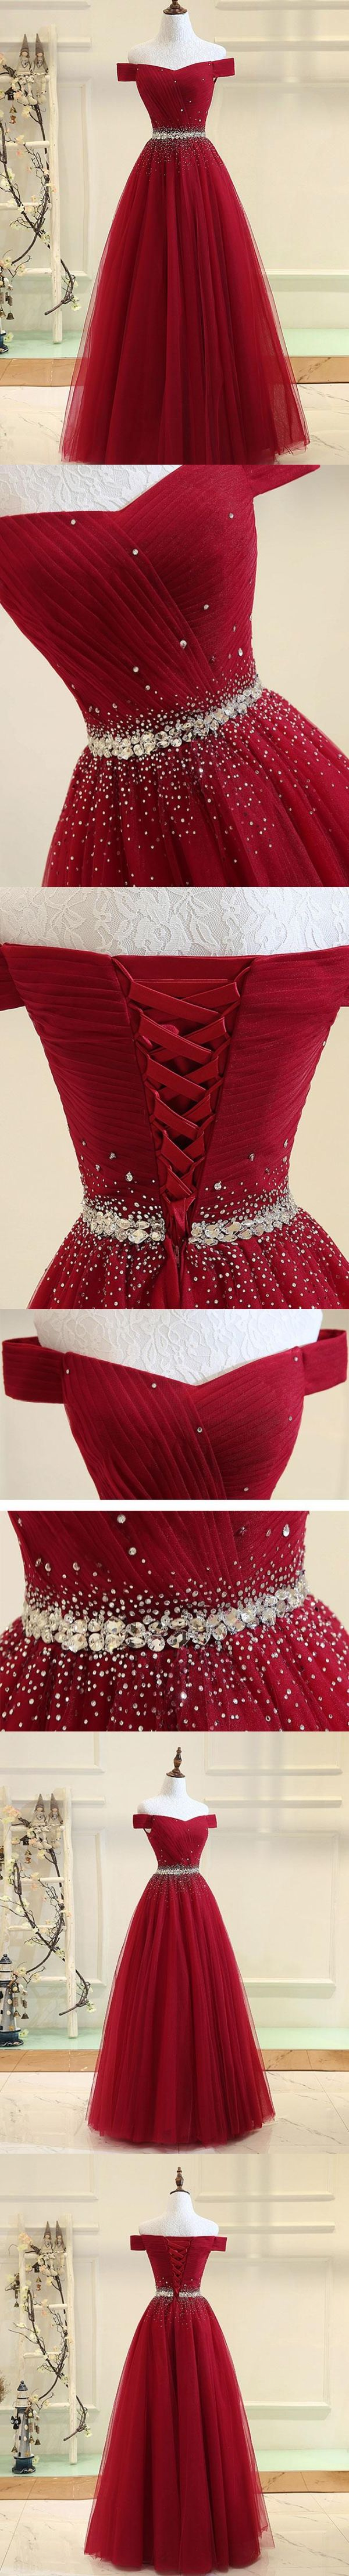 prom dresses long,prom dresses for teens,prom dresses boho,prom dresses cheap,junior prom dresses,beautiful prom dresses,prom dresses flowy,prom dresses 2018,gorgeous prom dresses,prom dresses unique,prom dresses elegant,prom dresses graduacion,prom dresses classy,prom dresses modest,prom dresses simple,prom dresses a line, prom dresses burgundy,prom dresses off the shoulder #annapromdress #prom #promdress #evening #eveningdress #dance #longdress #longpromdress #fashion #style #dress